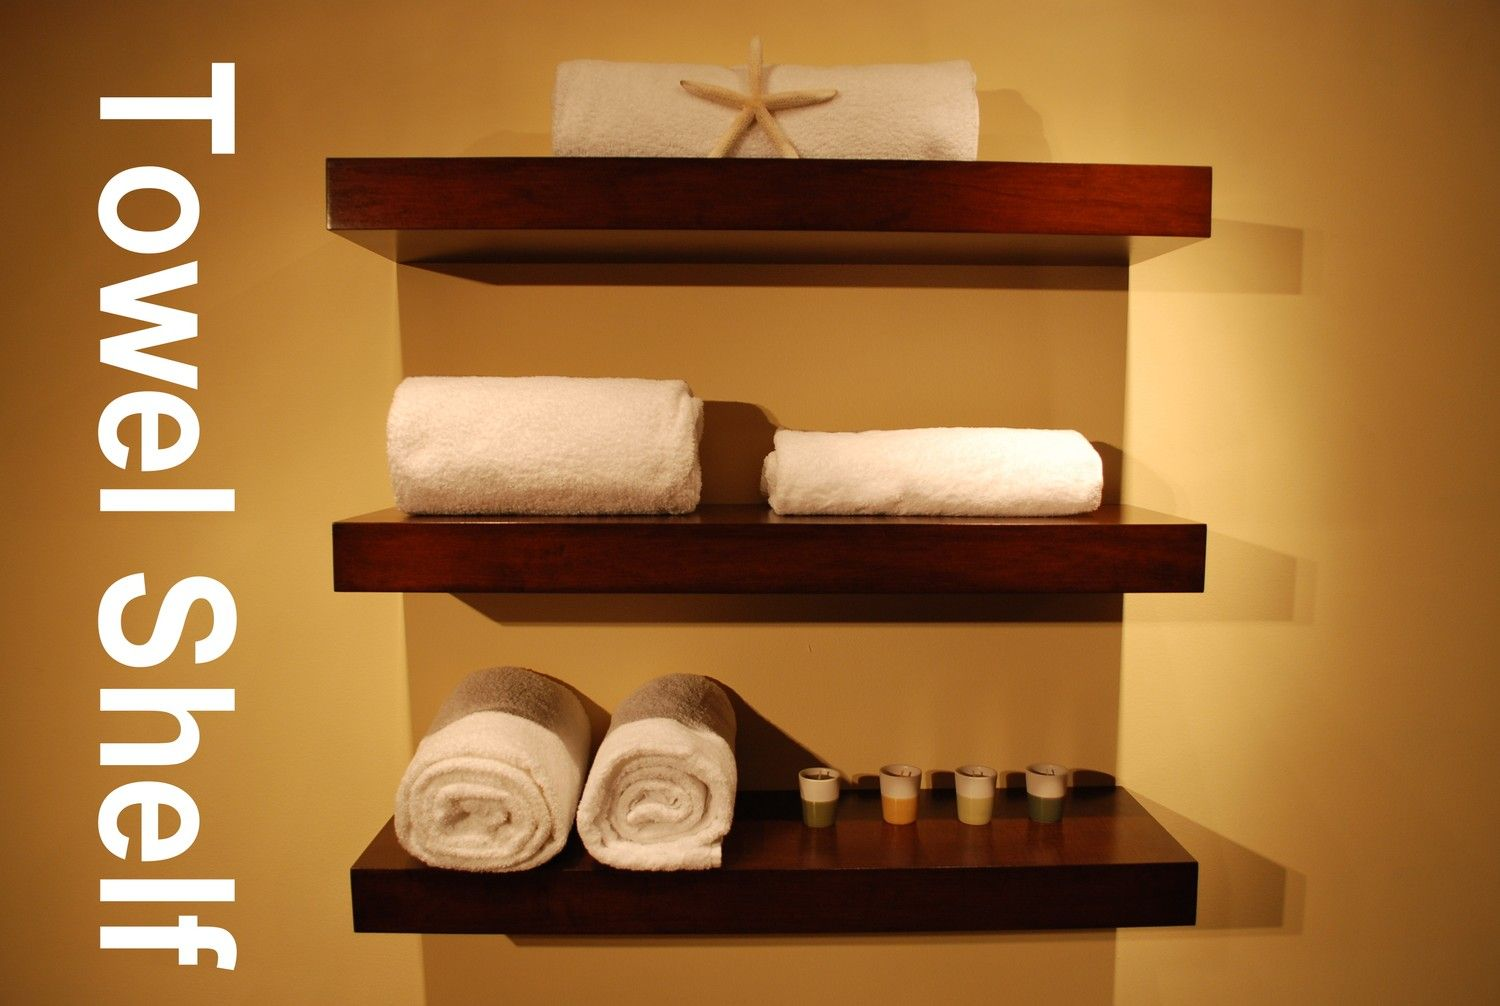 Wooden Towel Shelf Google Search Anjani Interior Pinterest Towel Shelf Shelves And Spa